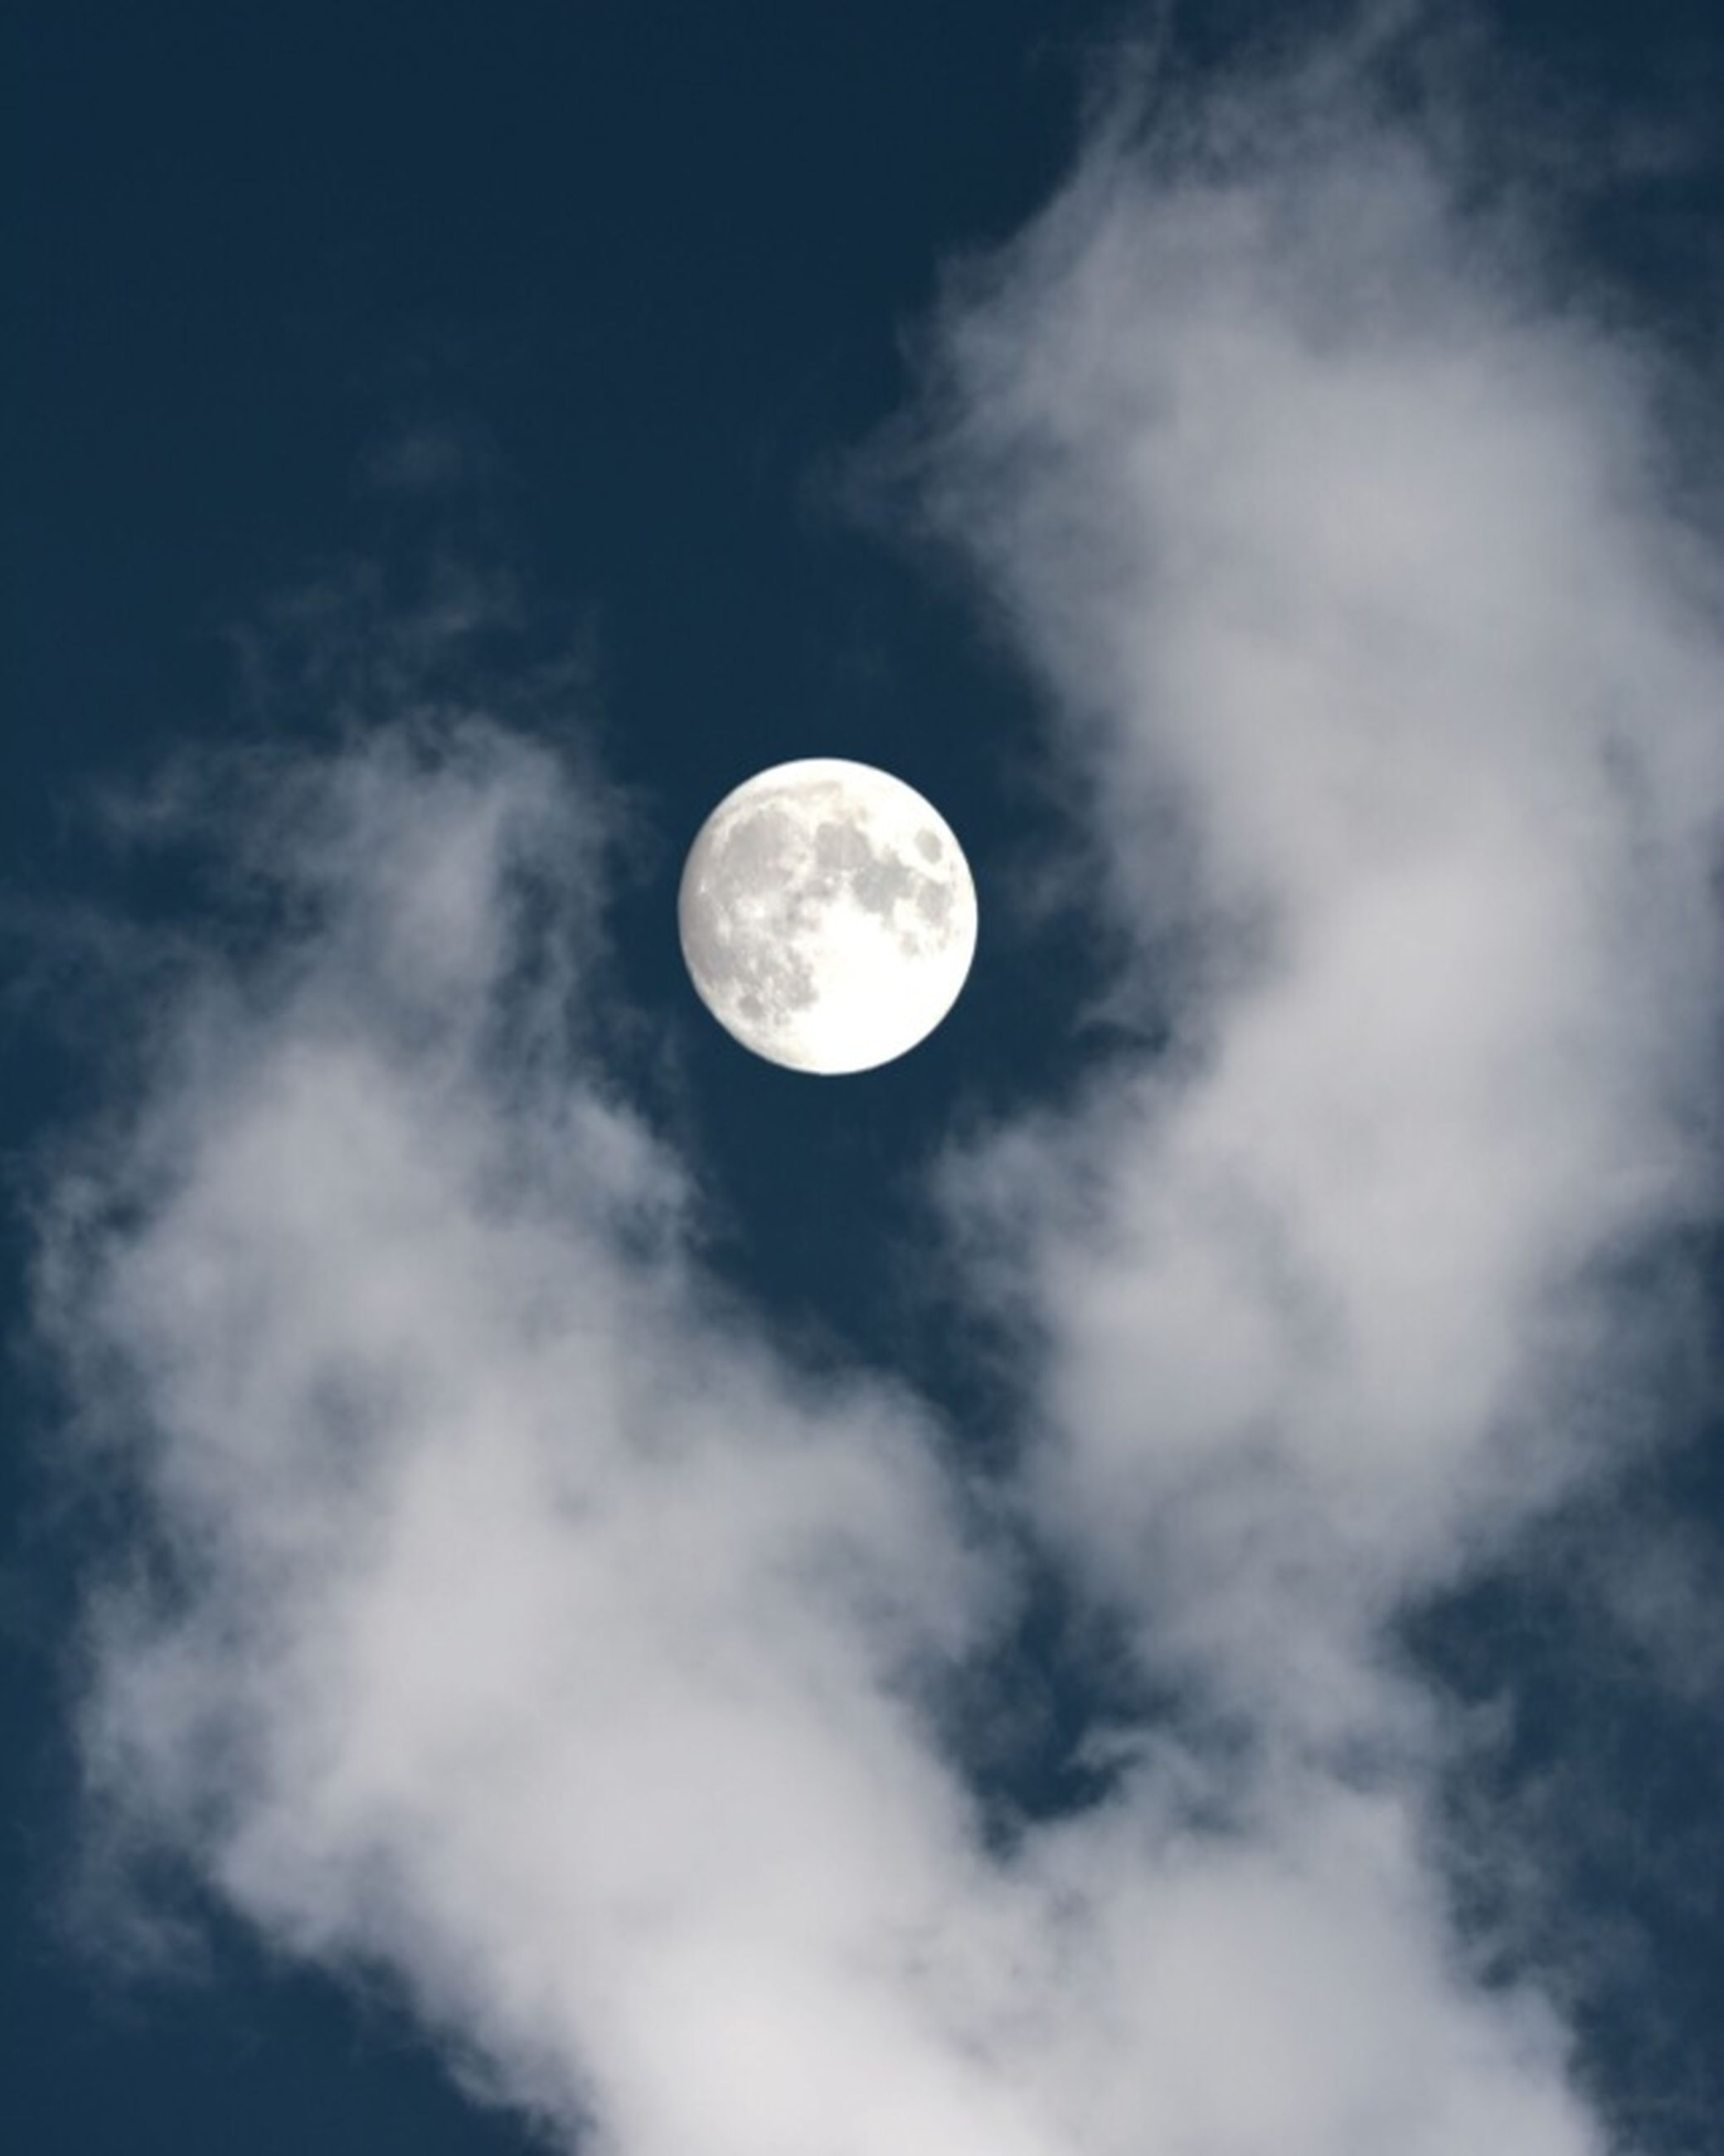 moon, low angle view, full moon, astronomy, sky, planetary moon, circle, beauty in nature, scenics, tranquility, tranquil scene, nature, moon surface, space exploration, sphere, night, discovery, sky only, majestic, idyllic